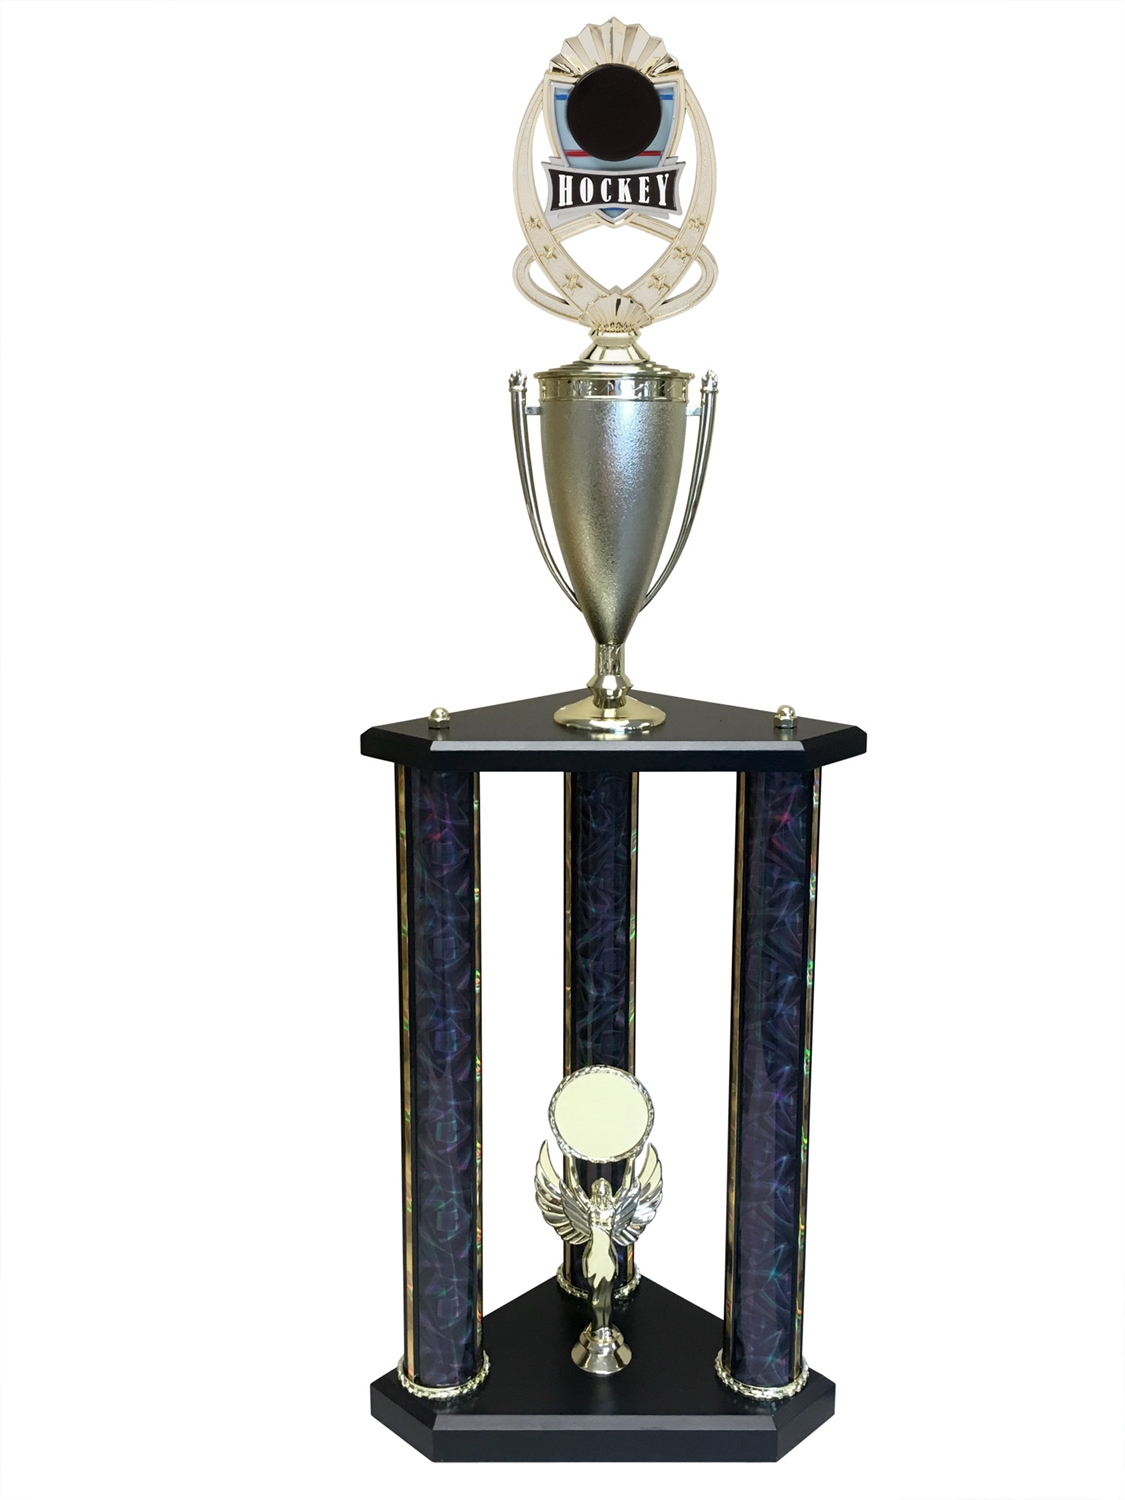 3 Post Hockey Trophy in 11 colors & 3 sizes